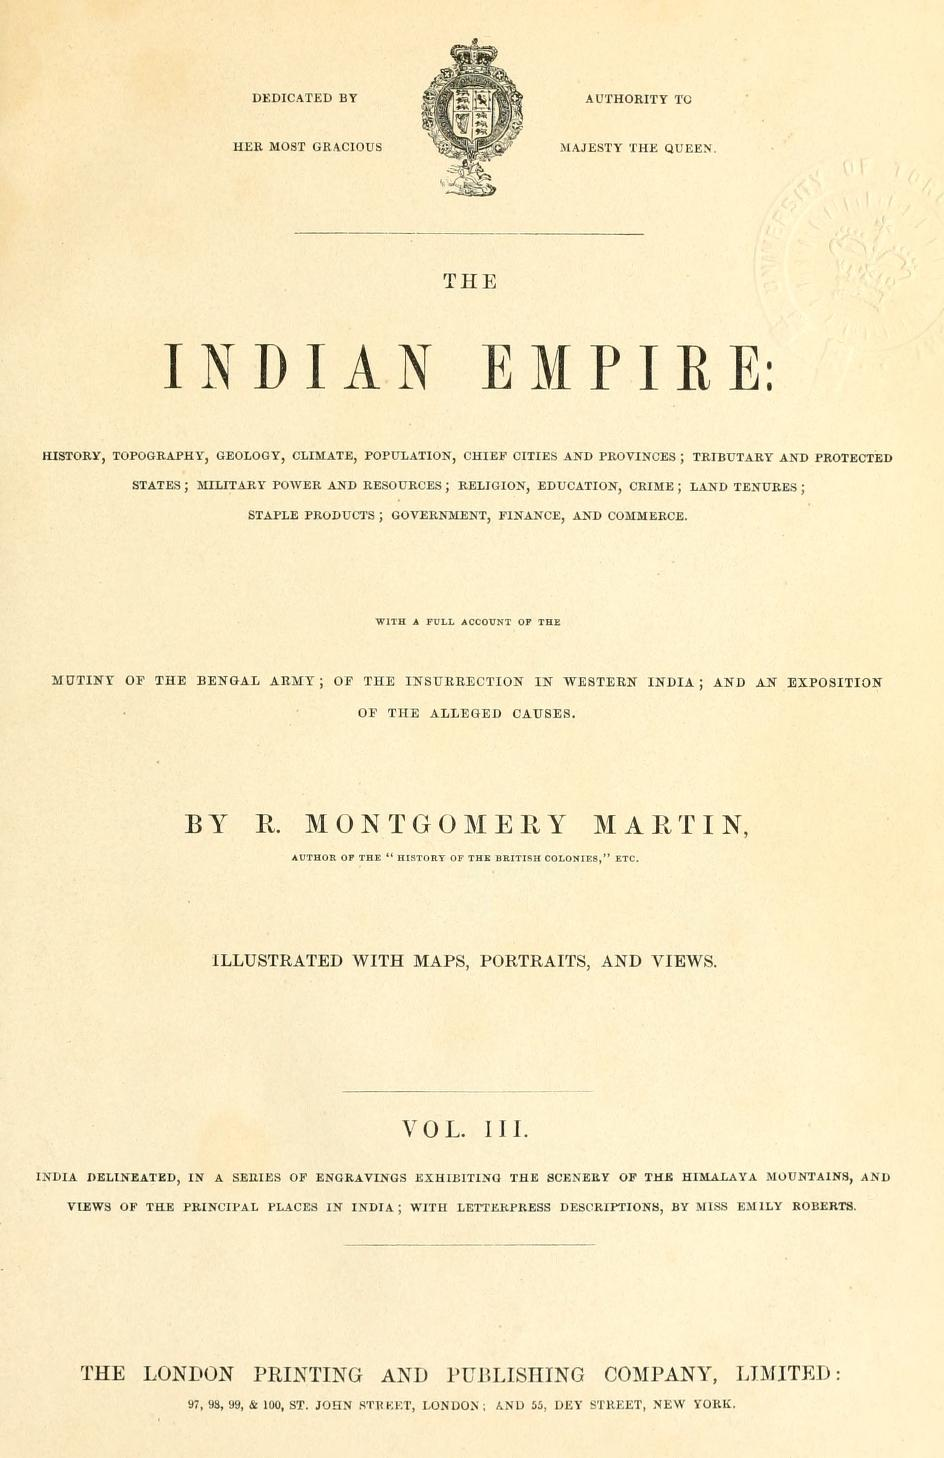 Cover_of_indian_empire_illustraded indianempirehist03martuoft_0015